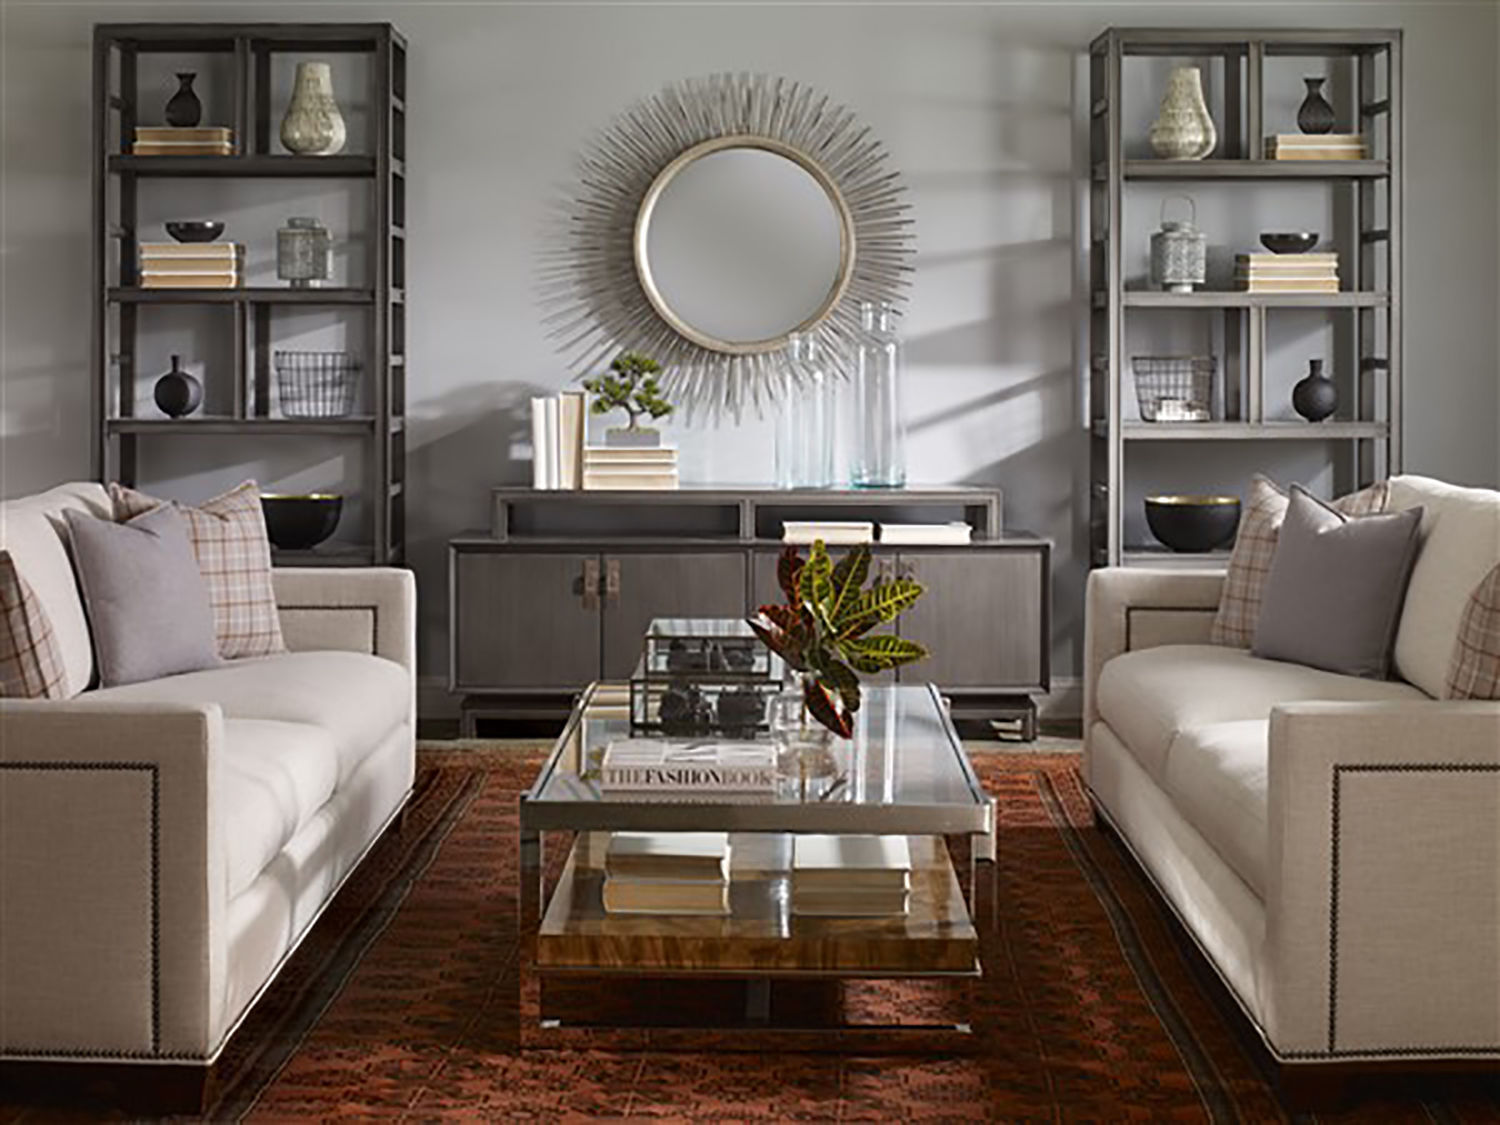 Transitional Style The Sweet Spot Between Traditional And